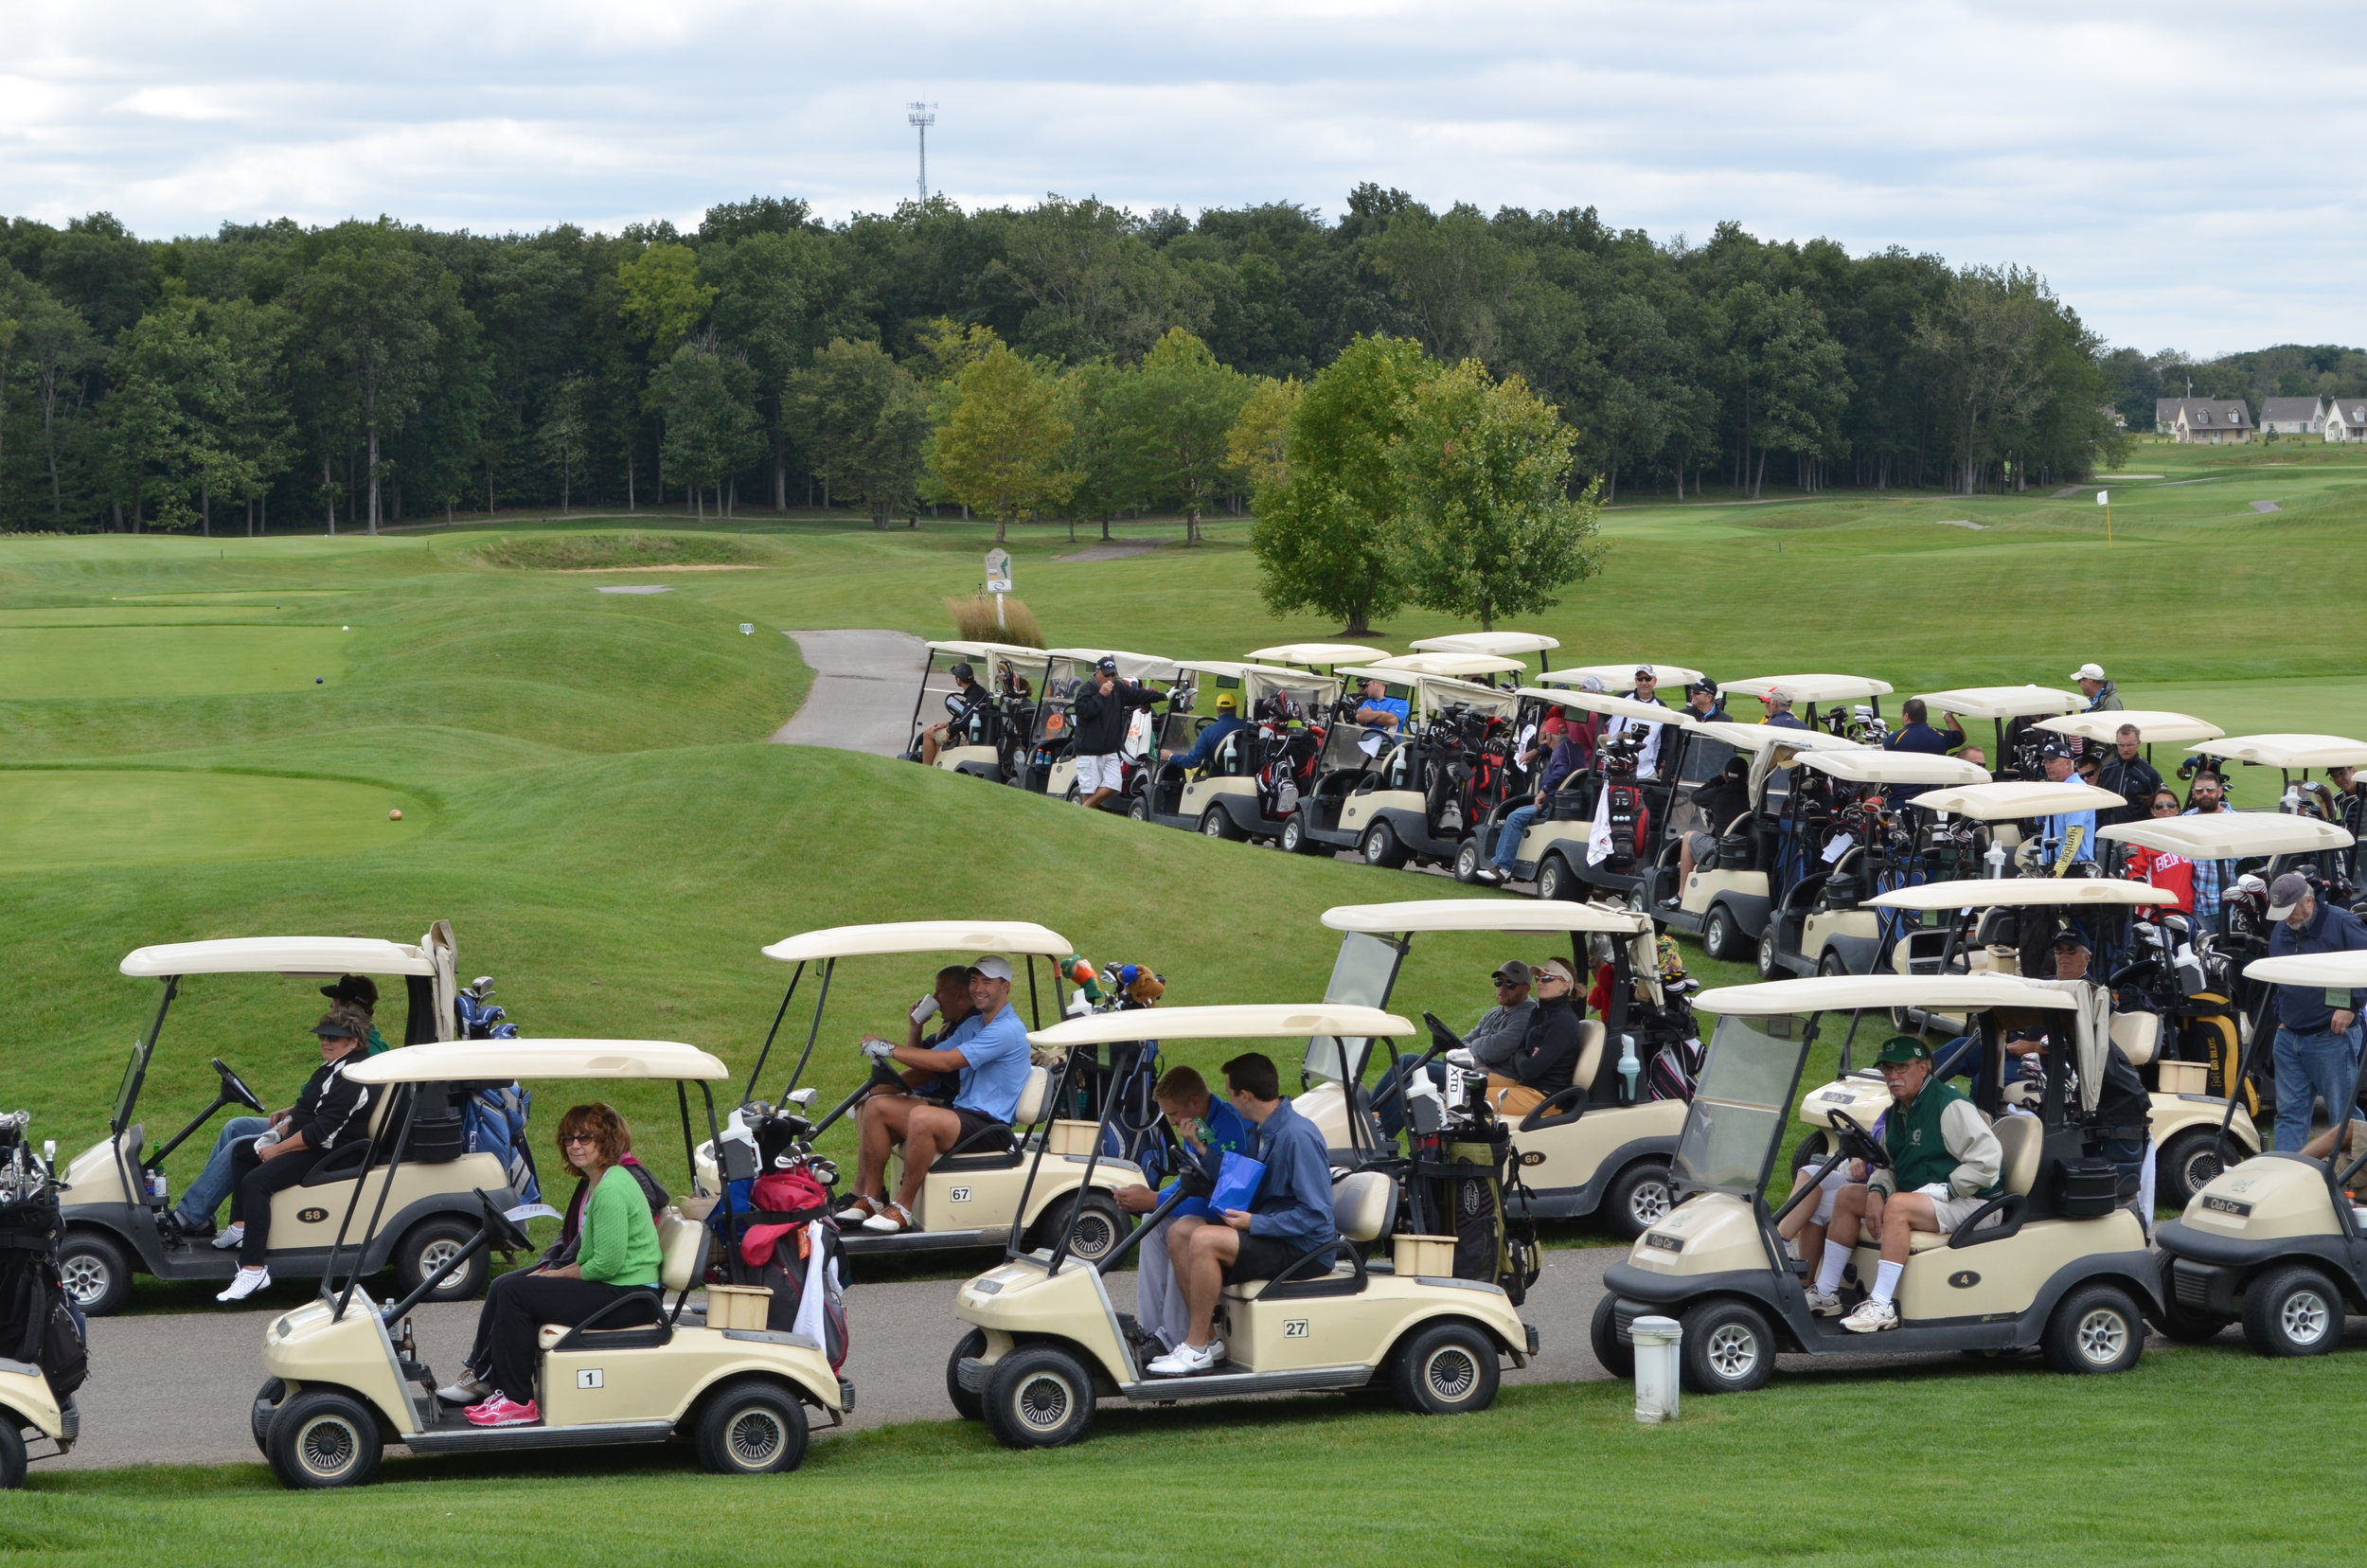 11th Annual Tee Off! - Where: The Legacy Golf Club (Ottawa Lake, MI)When: September 14, 2019Time: Shotgun start at 1:30pmWhat: Charity golf outingWhy: Raise funds to support local & international children's ministries in Toledo, Haiti, Jordan, and Bulgaria.For more details, view the printable brochure below